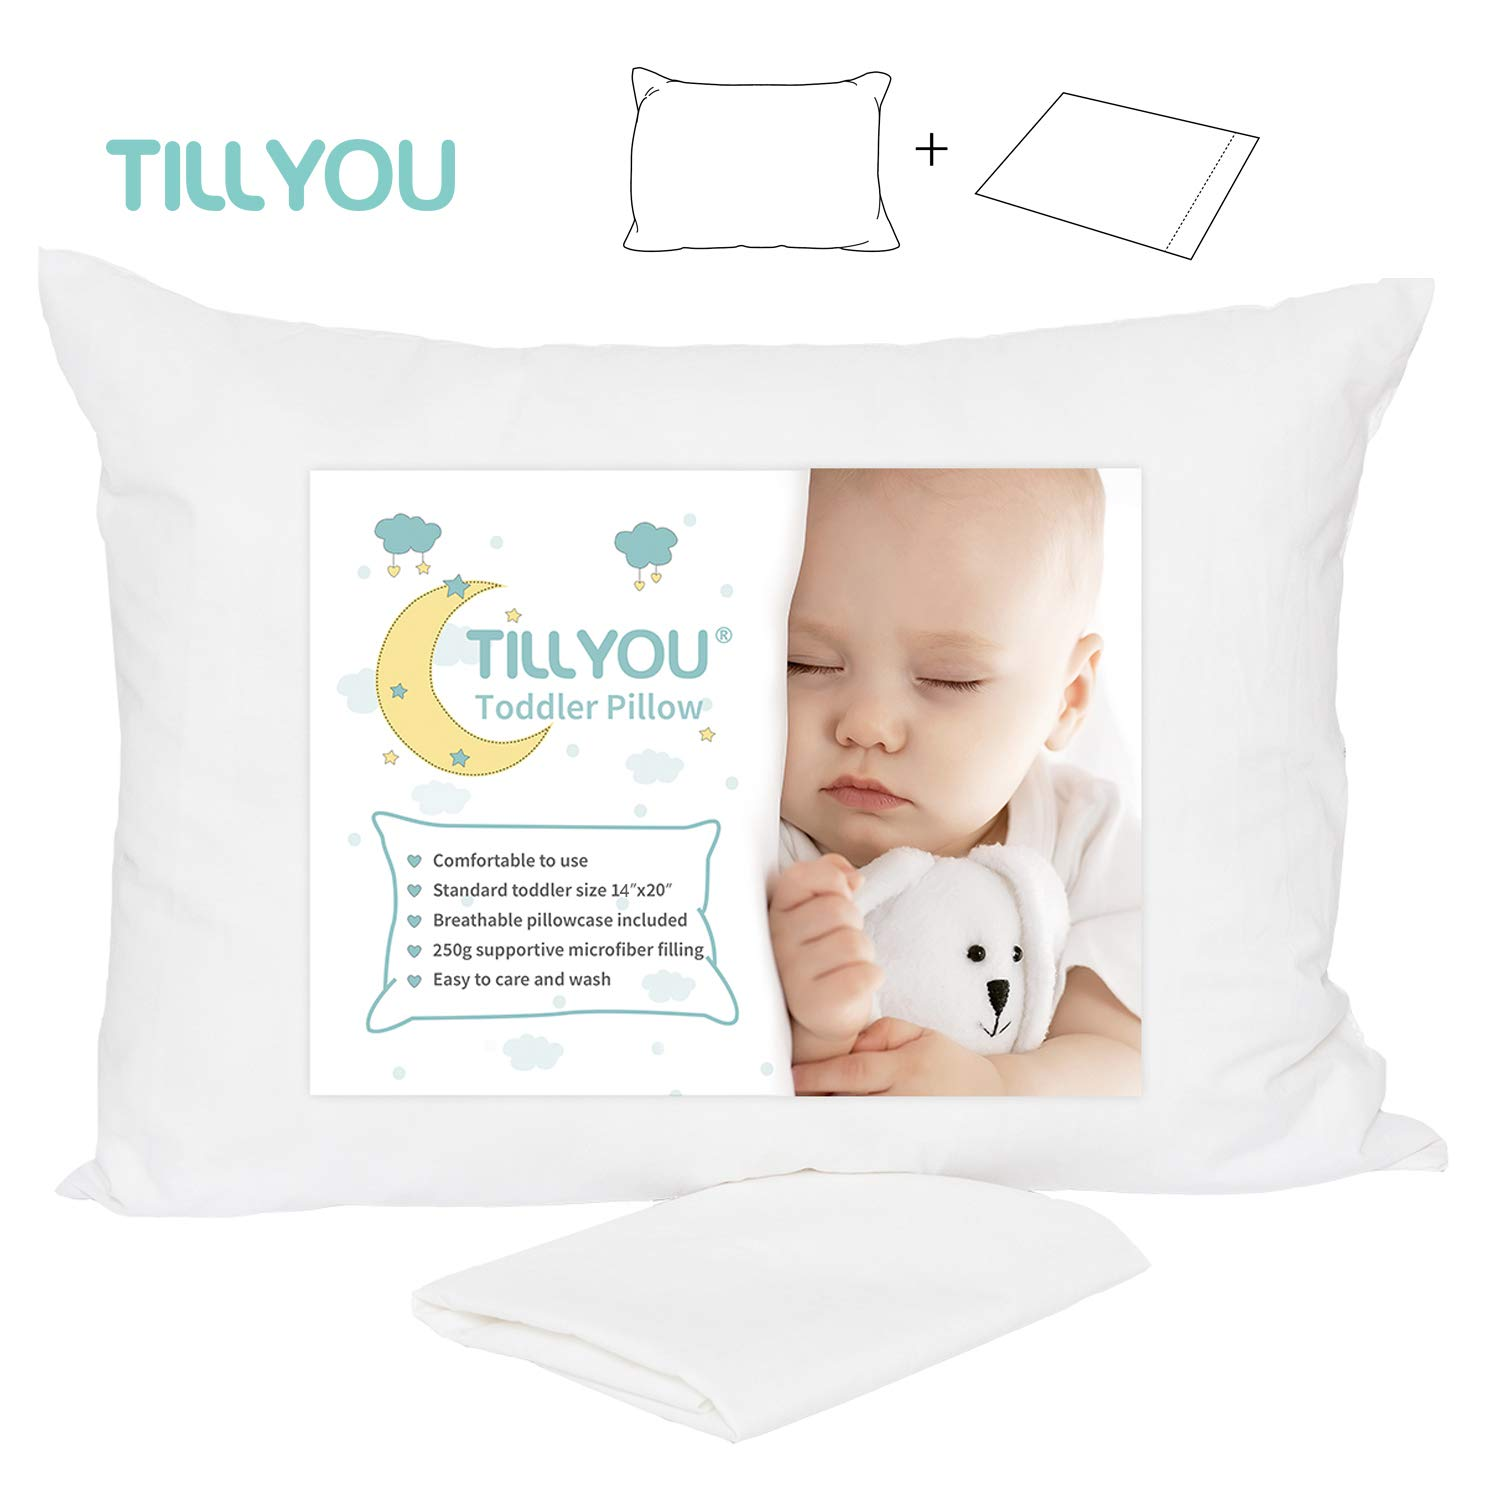 Toddler Pillow with Pillowcase – 100% Egyptian Cotton Baby Pillow for Sleeping – Machine Washable Kids Pillow for Preschool – Small Pillow for Toddler Nap Cot, Airplane Travel, Bed, Crib 13X18 White